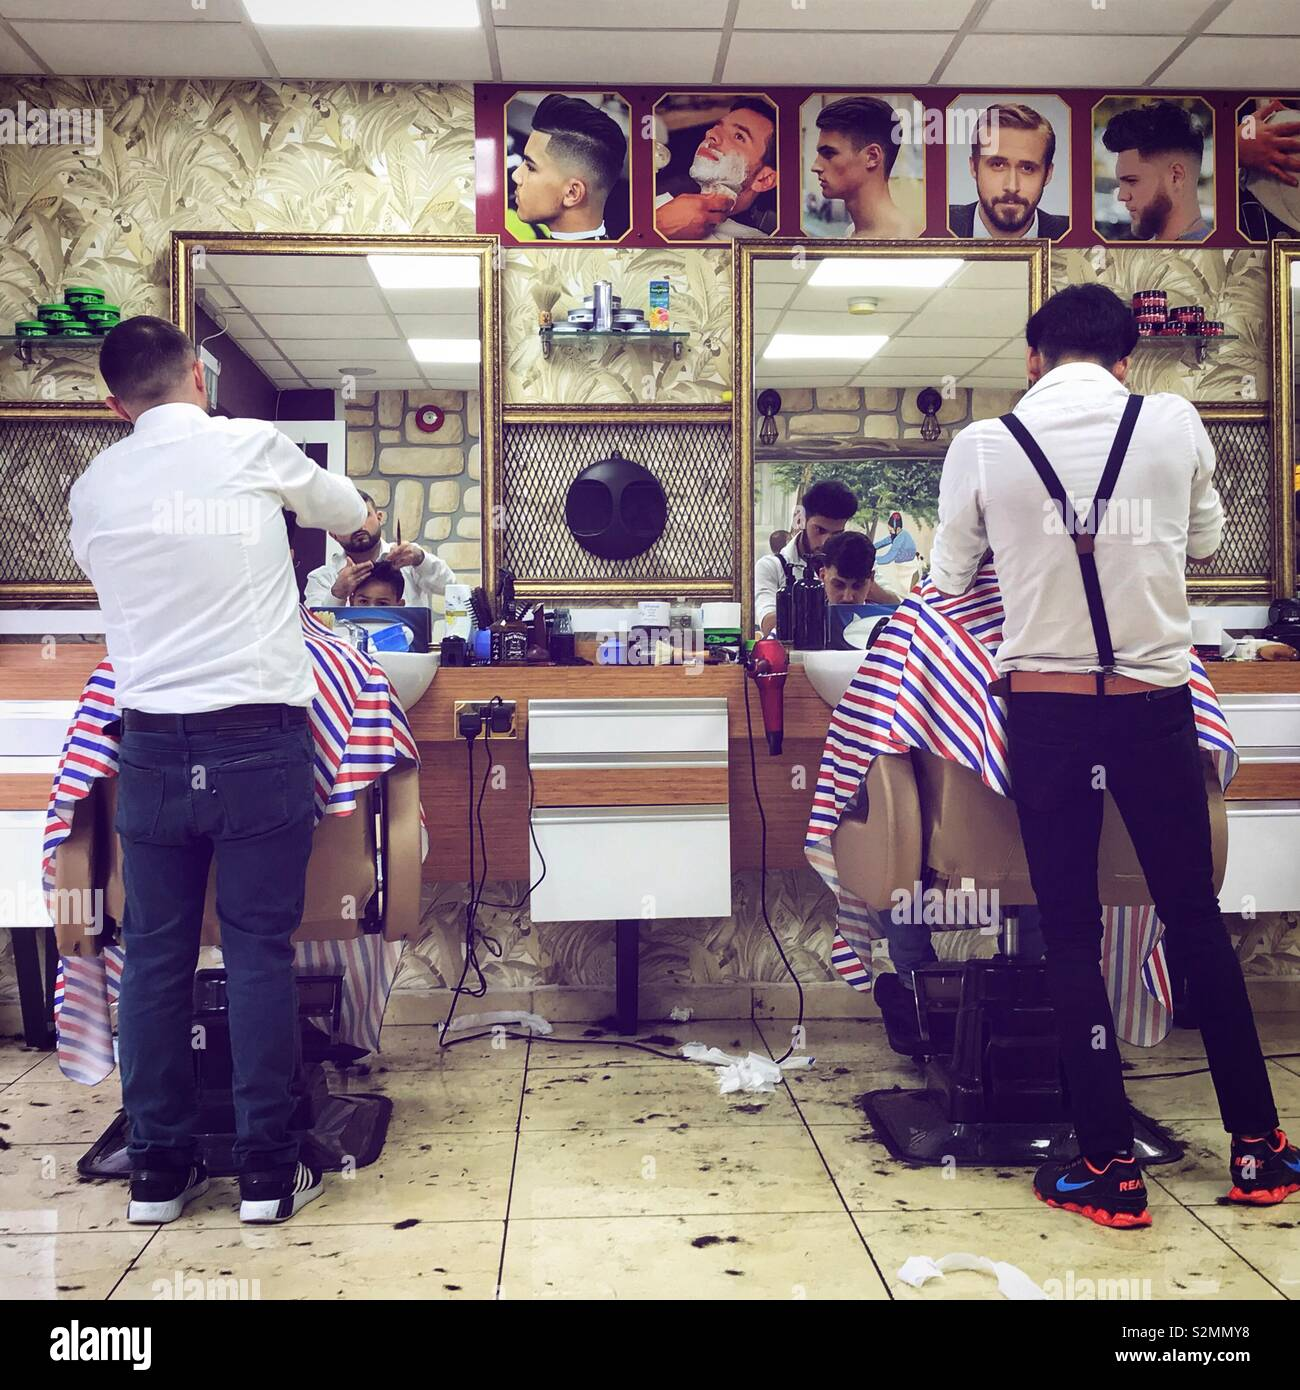 Babrers at work in a barbers shop cutting hair. - Stock Image